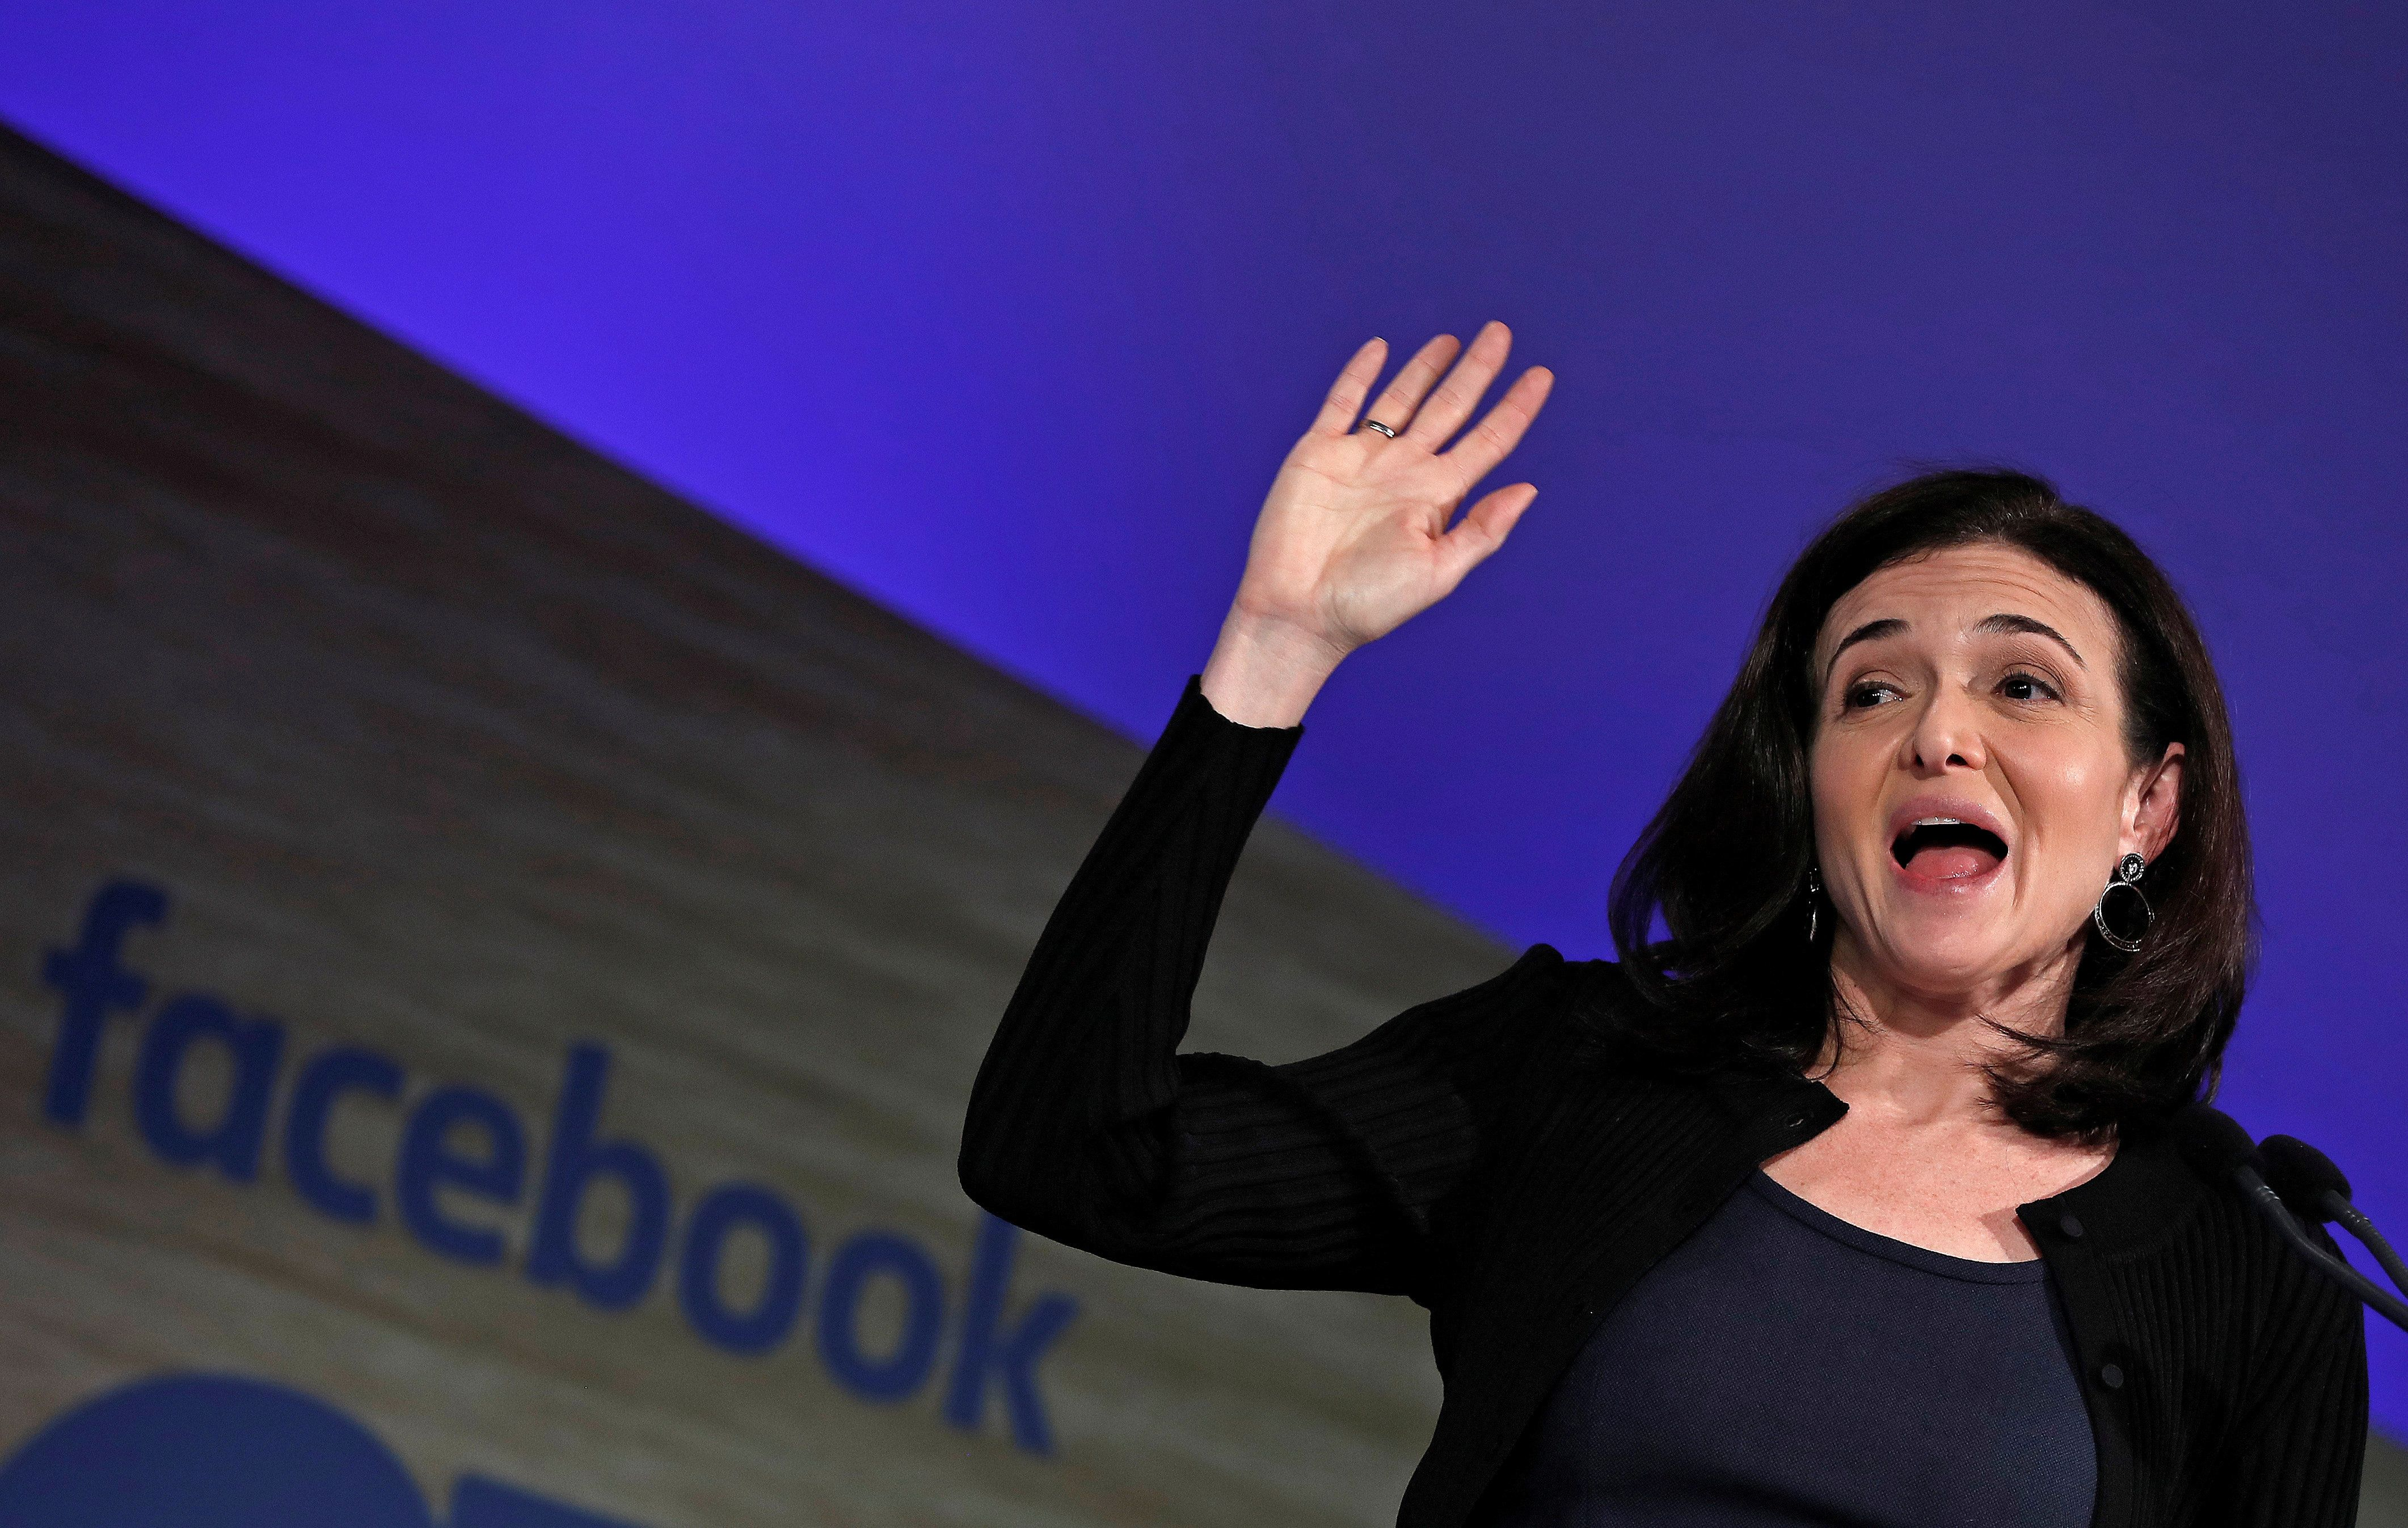 Facebook Chief Operating Officer Sheryl Sandberg in Brussels earlier this year.